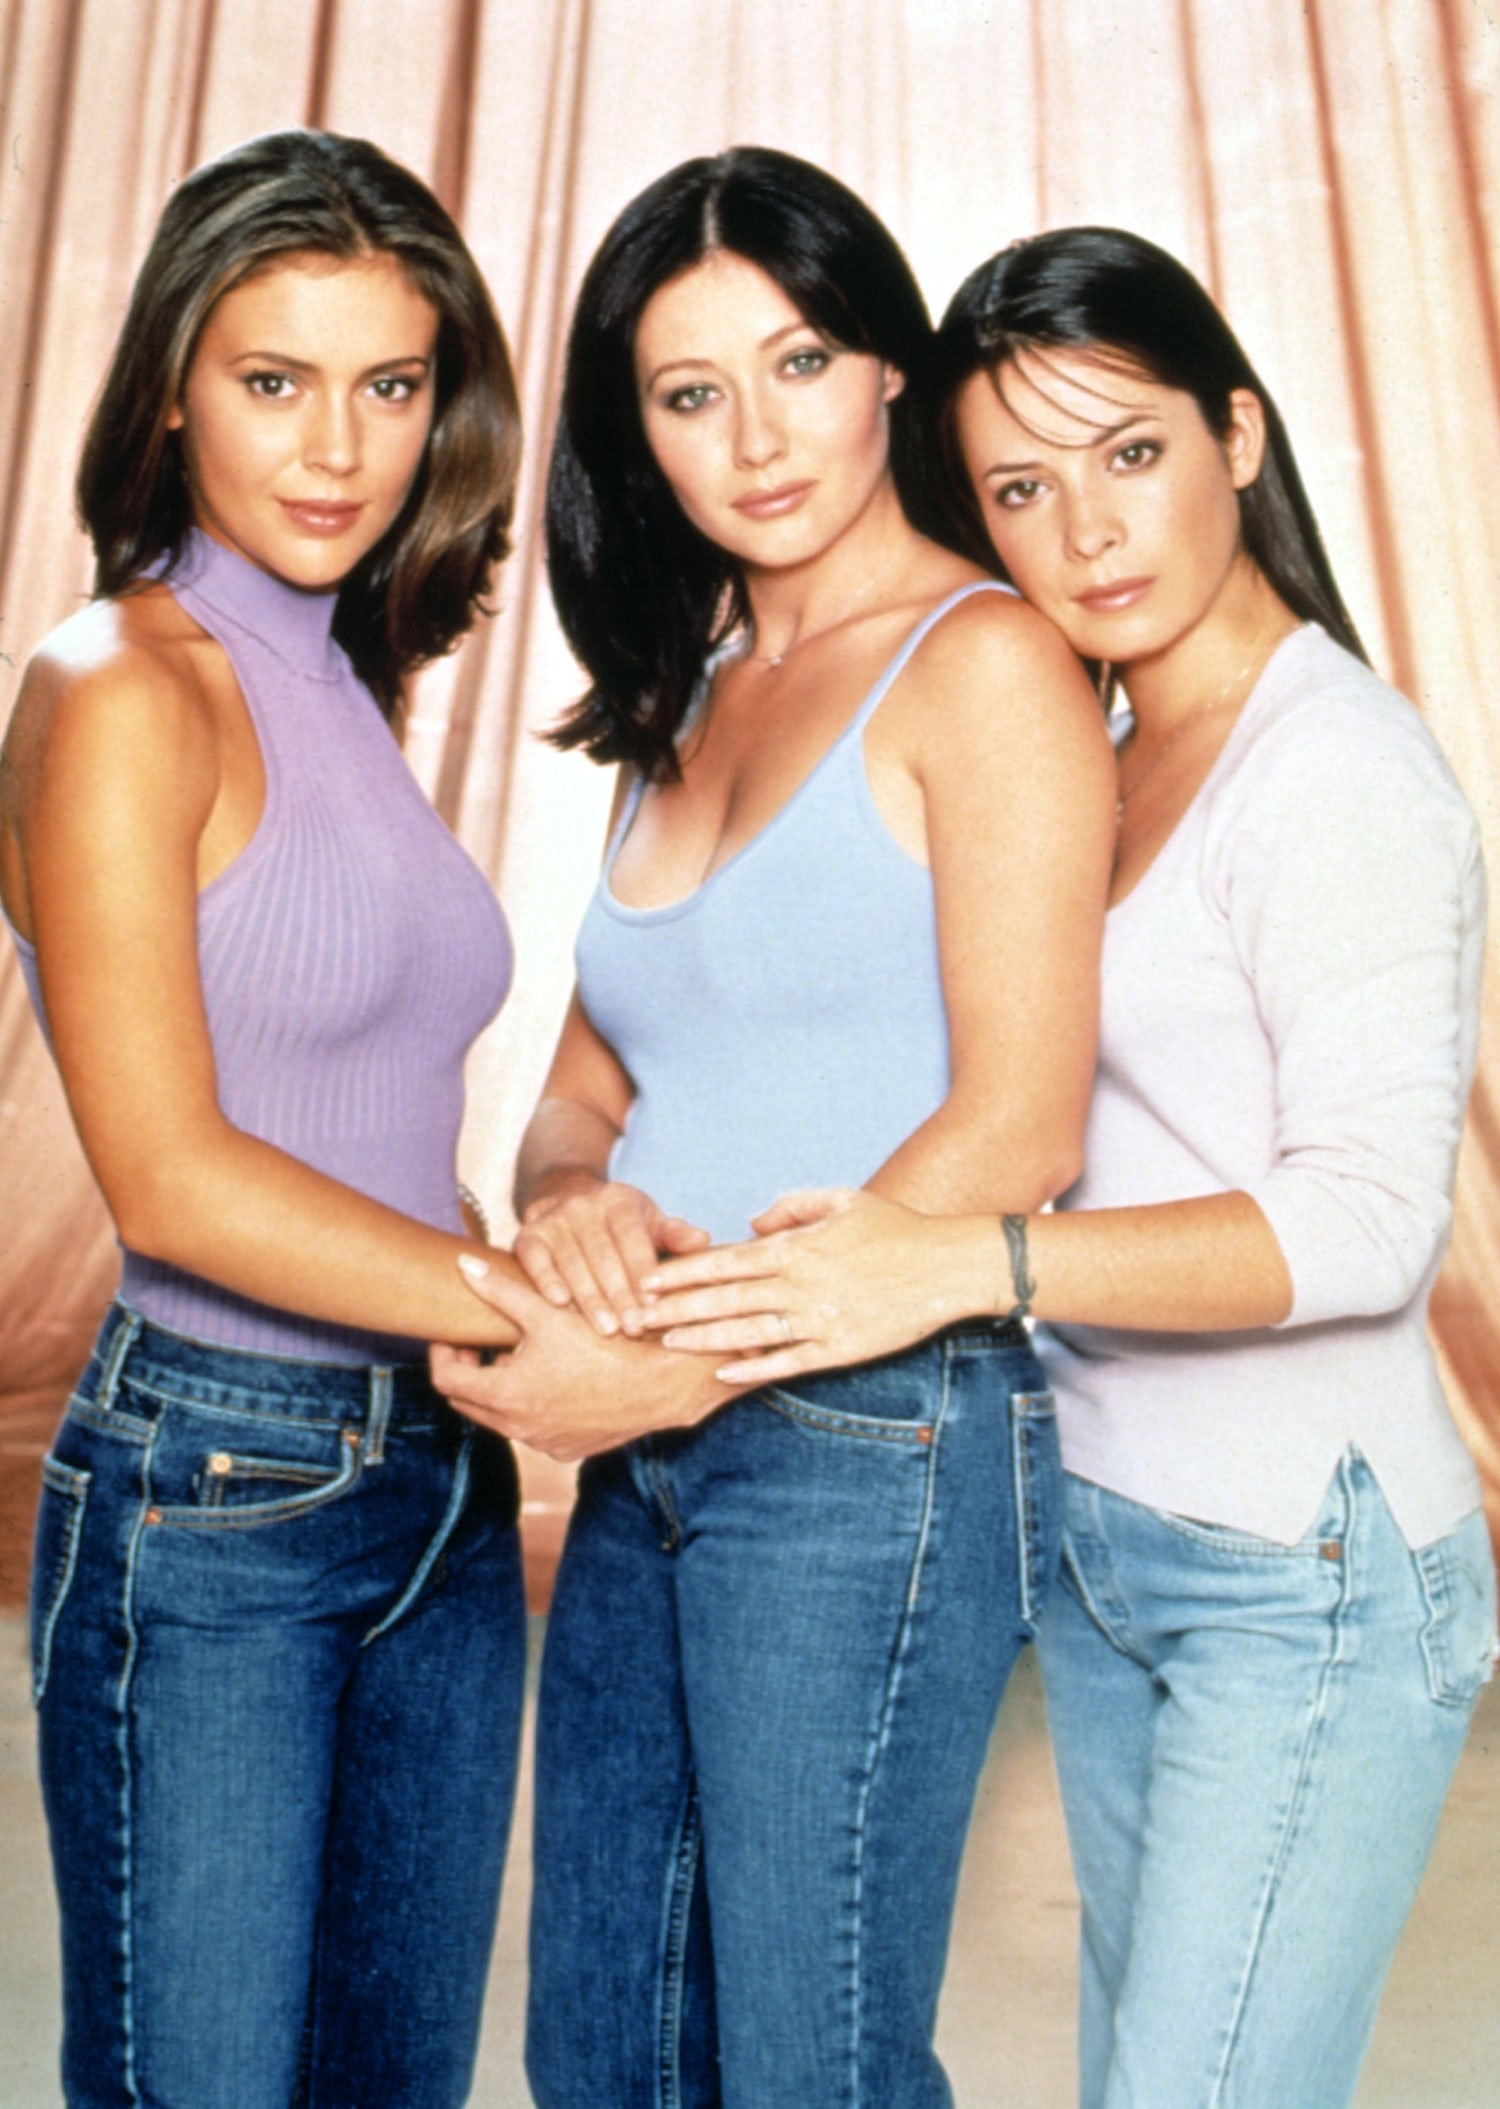 Shannen Doherty See Through photo 20